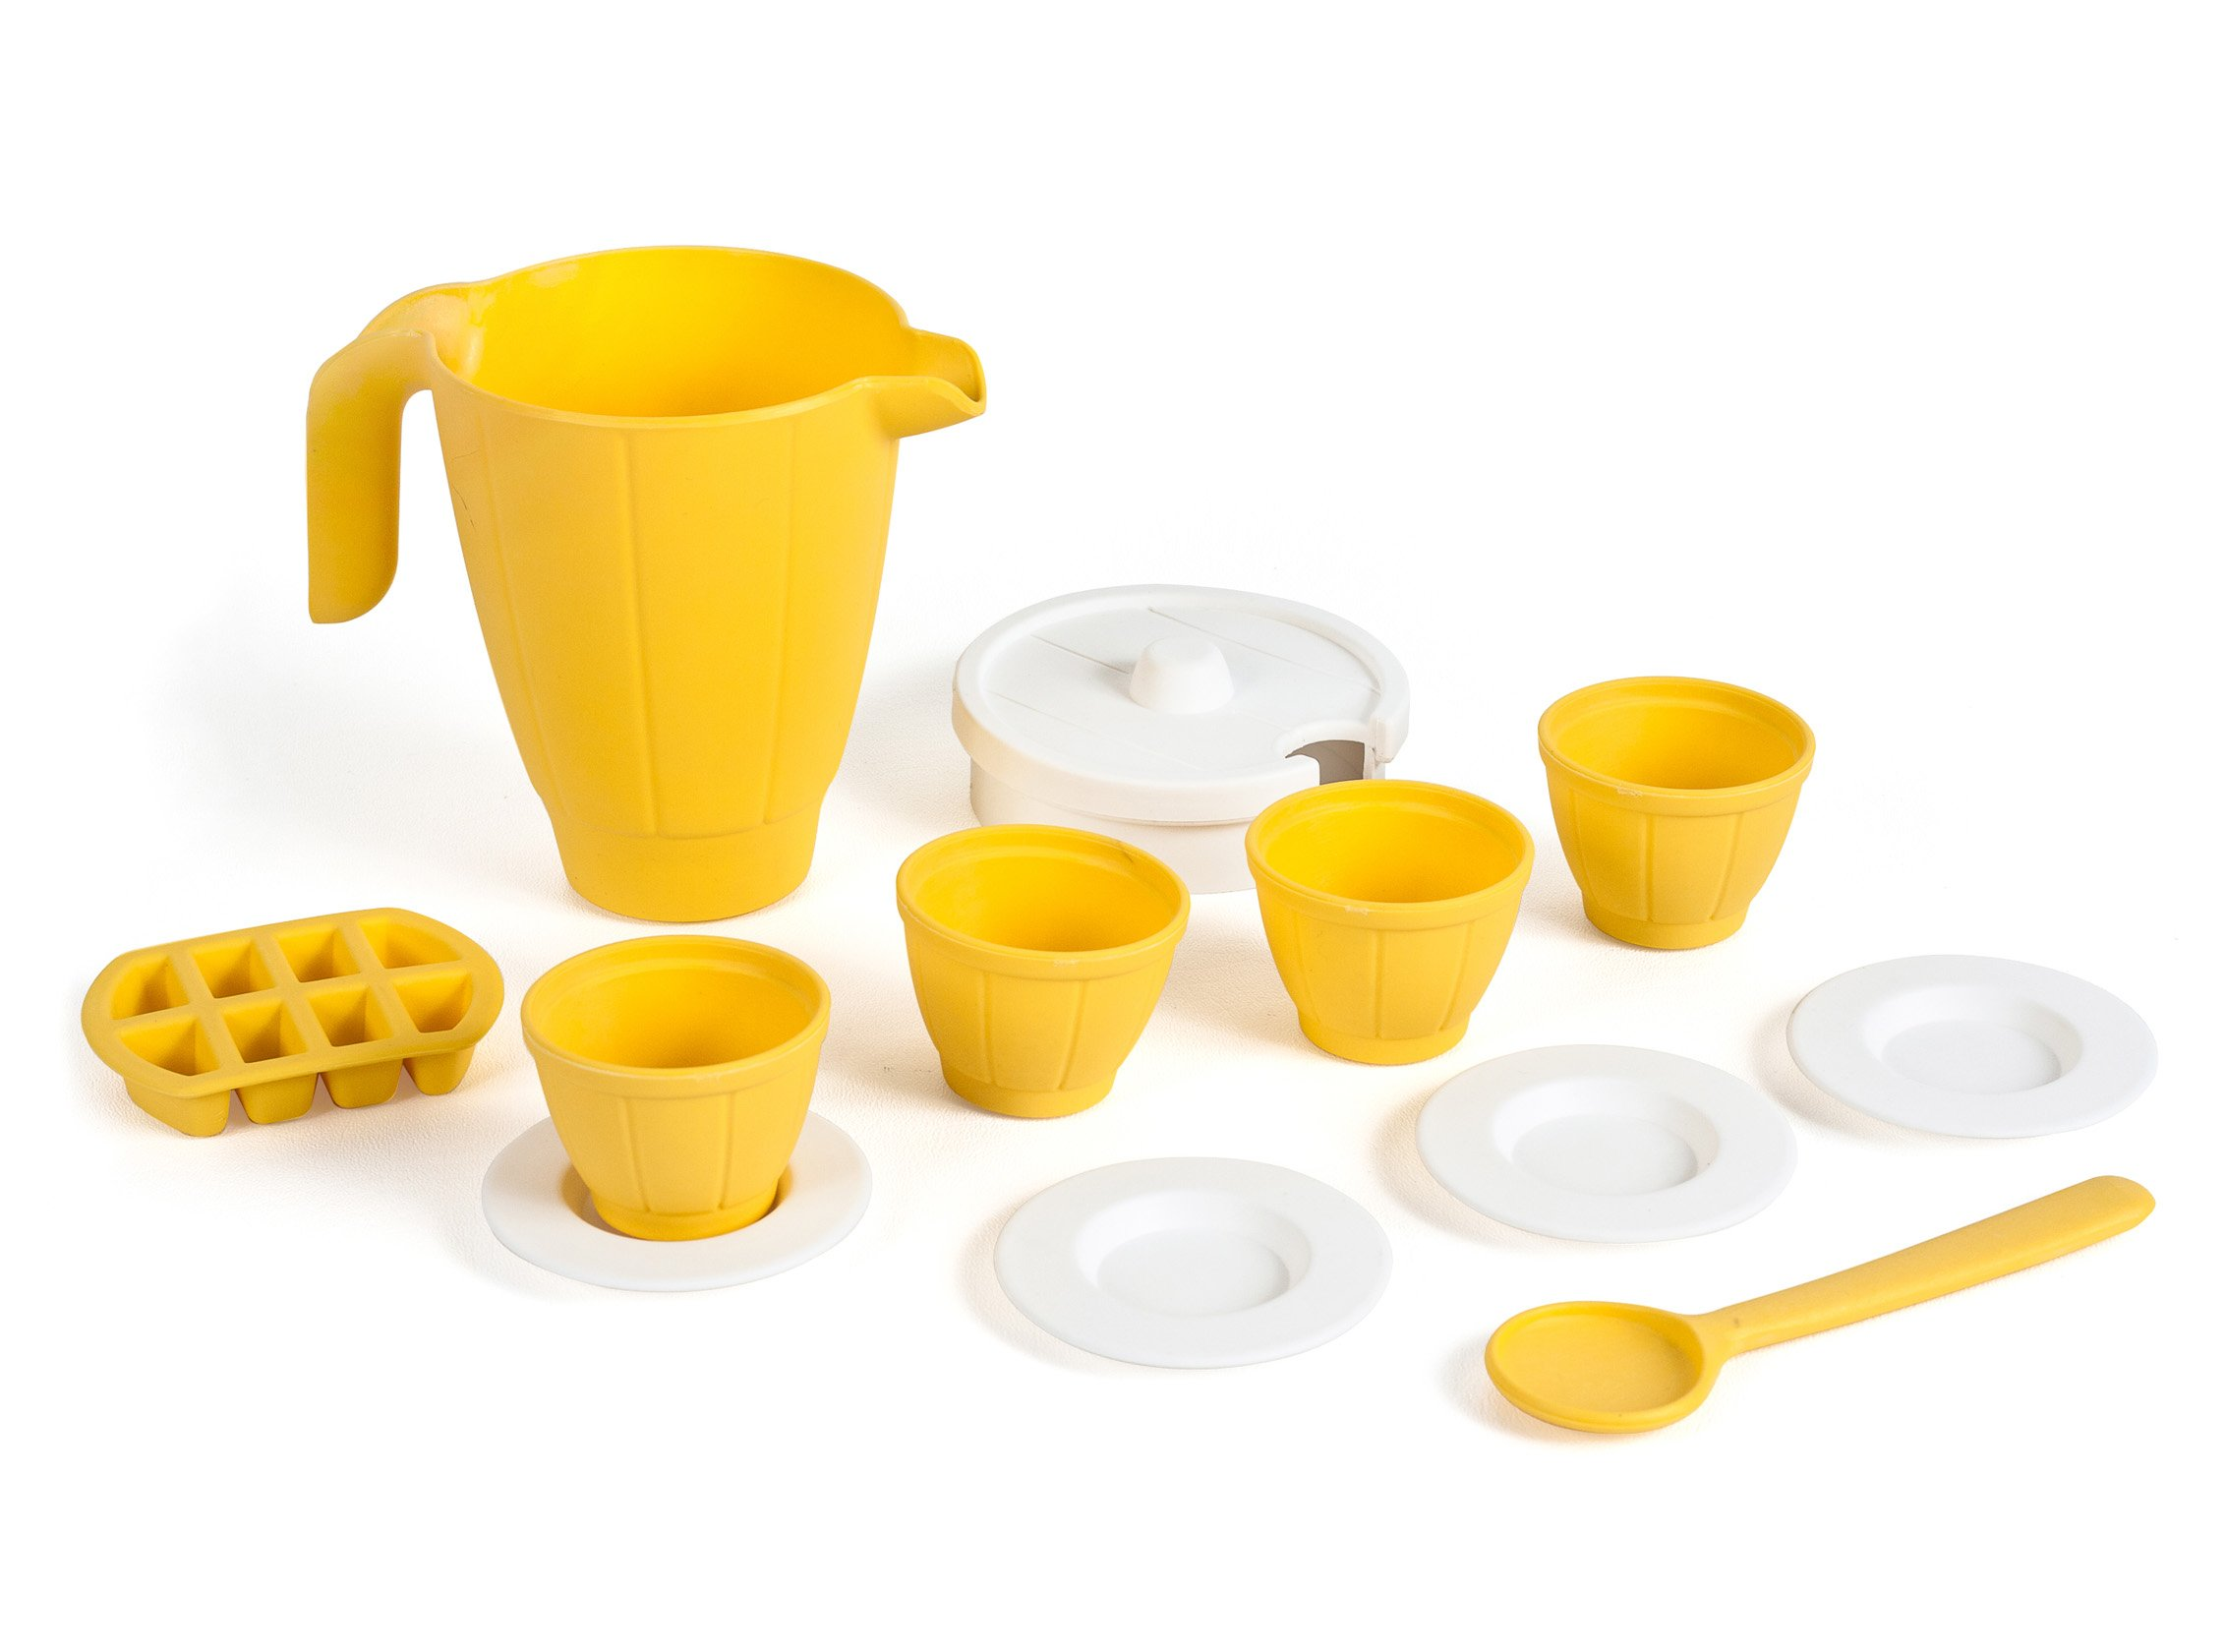 BeginAgain - The Lemonade Set, Perfect for Boys and Girls and for Promoting Imagination and Active Play, 12 Piece Playset (For Kids 2 and Up)